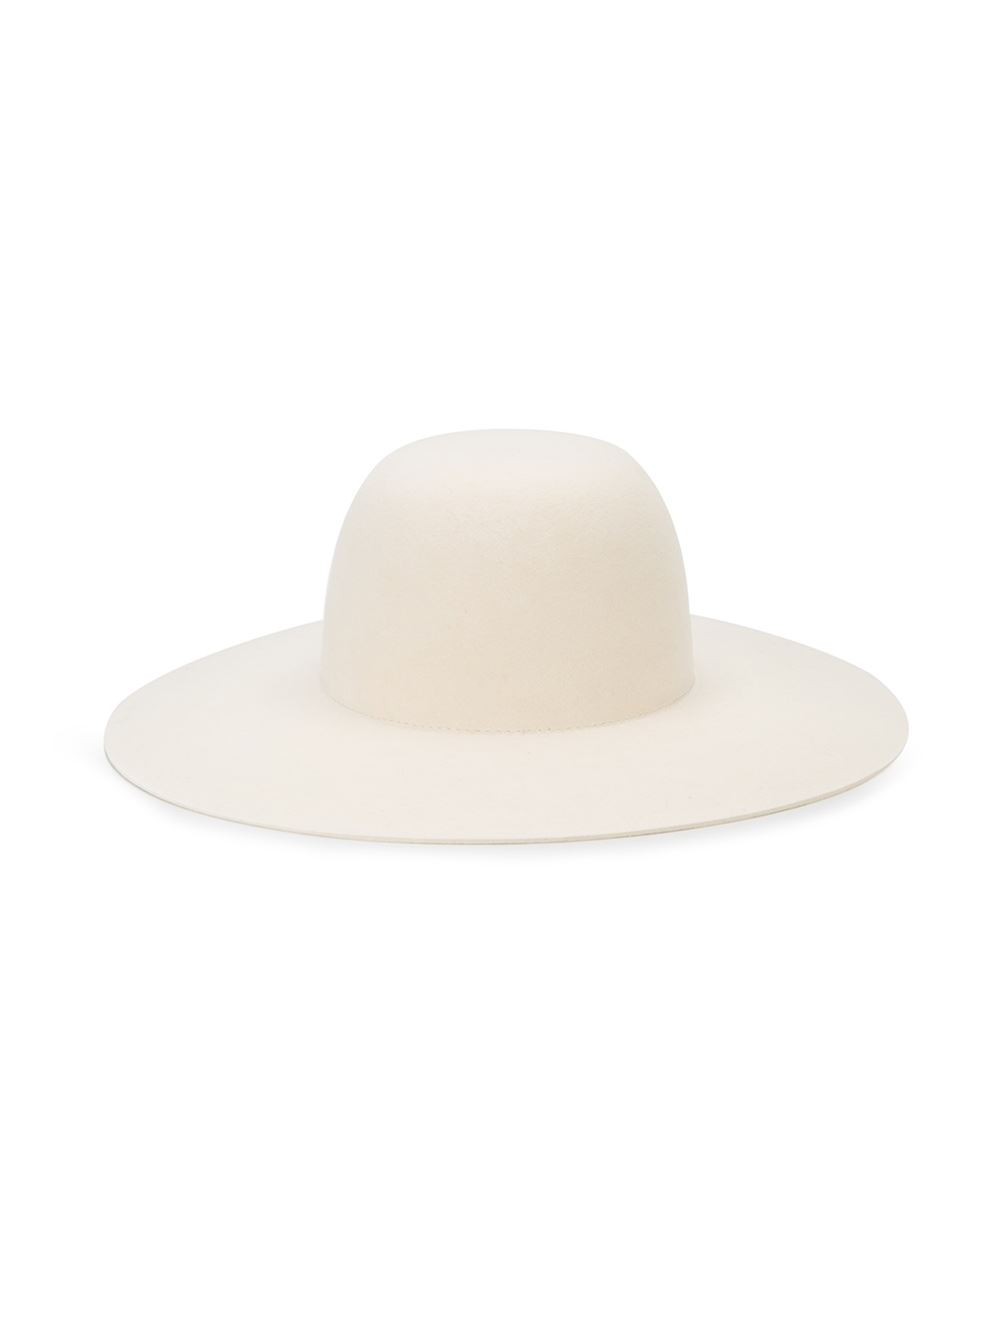 Off-White wide brim hat.jpg